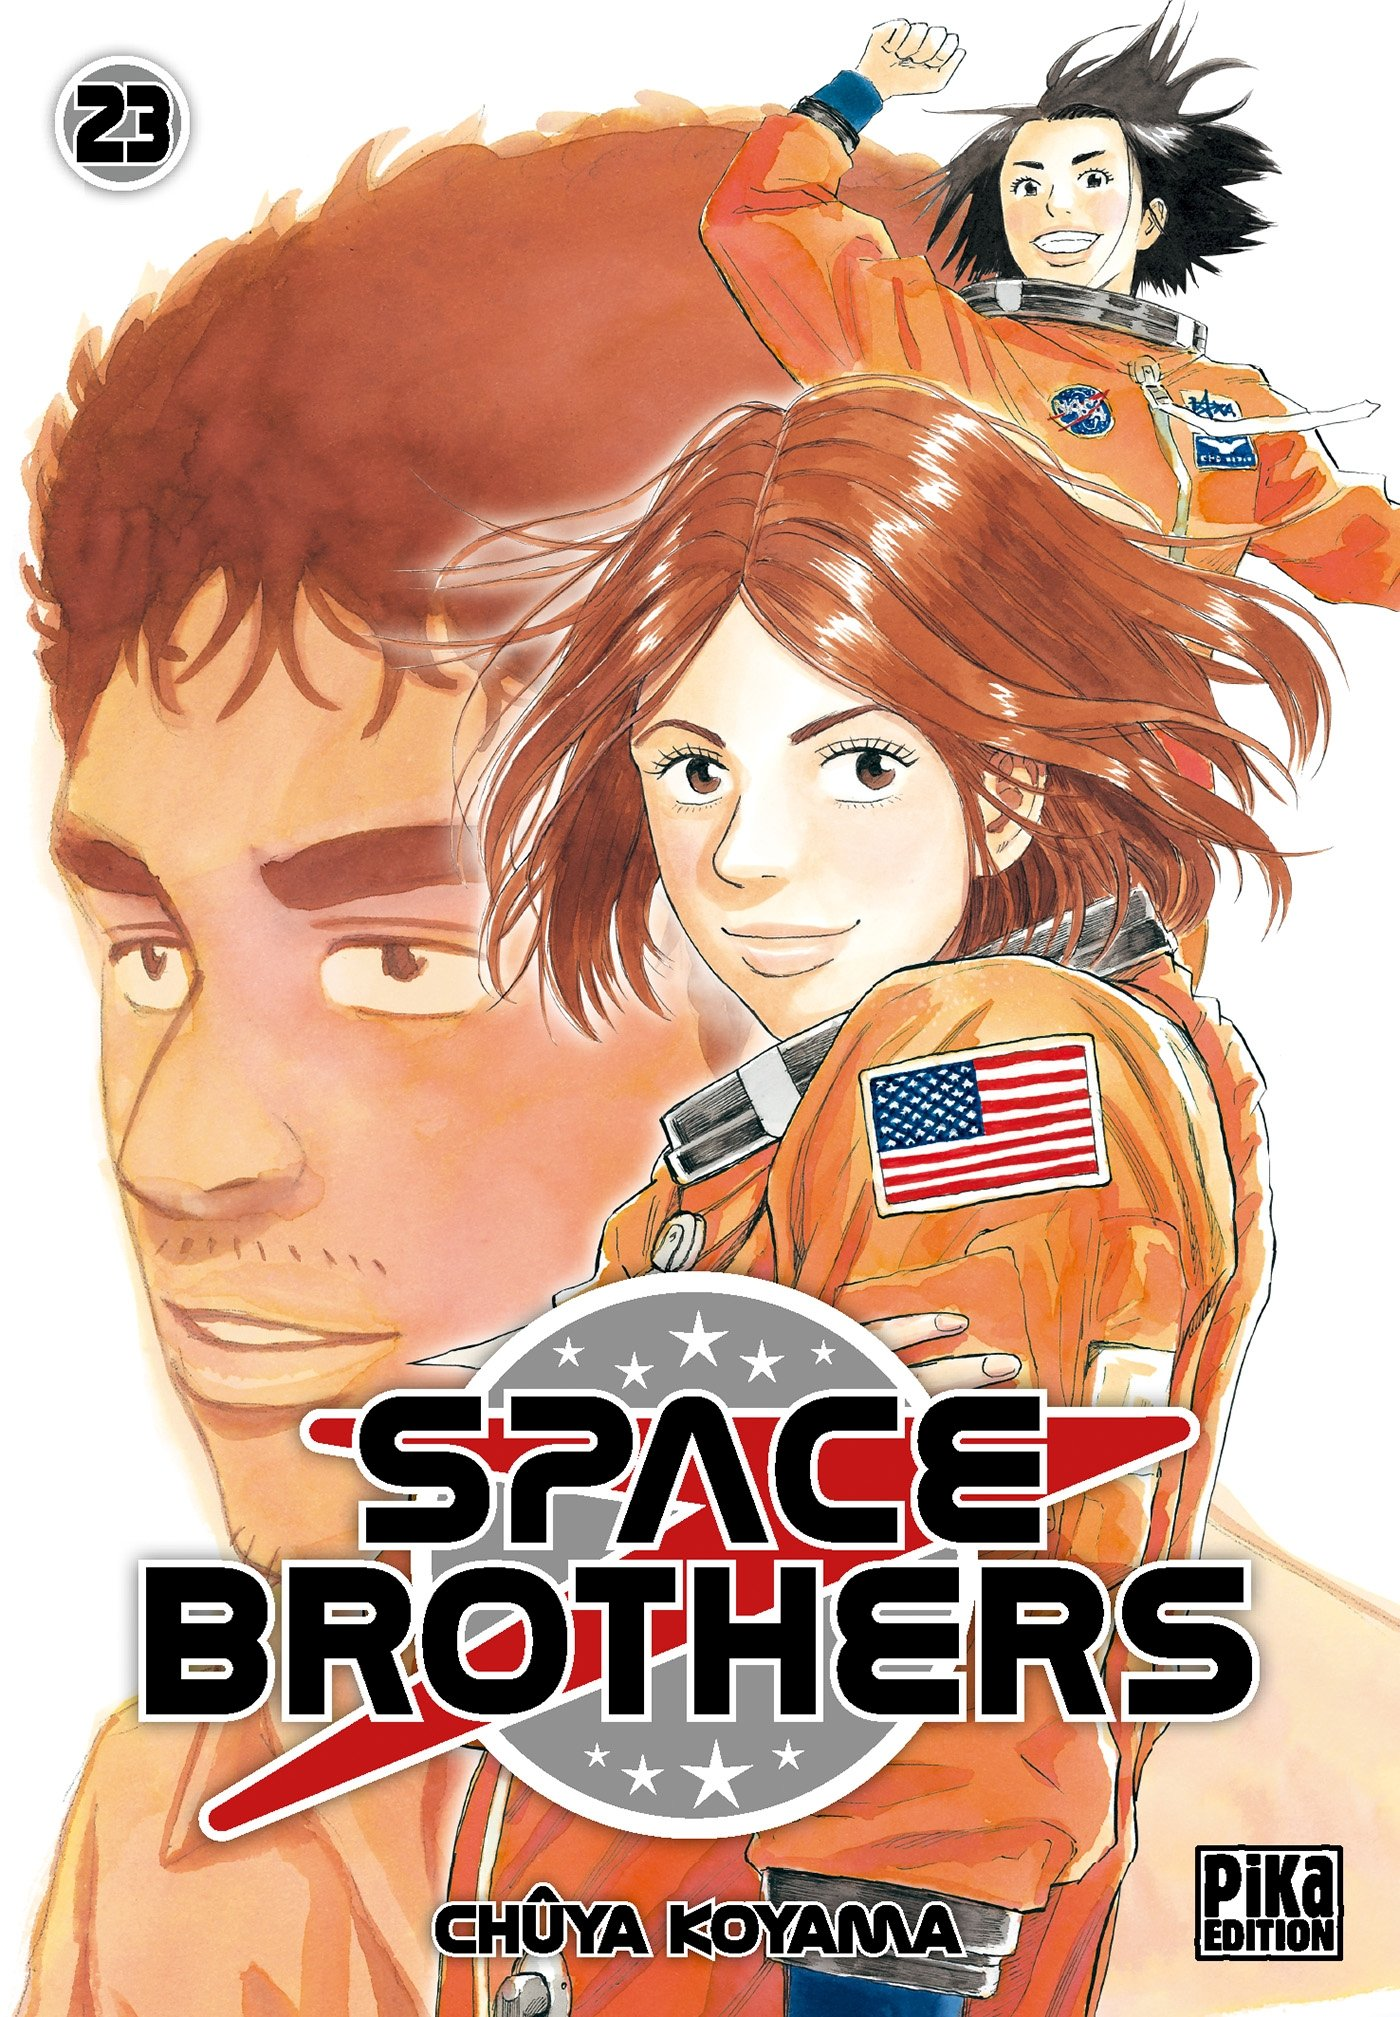 Space Brothers 23